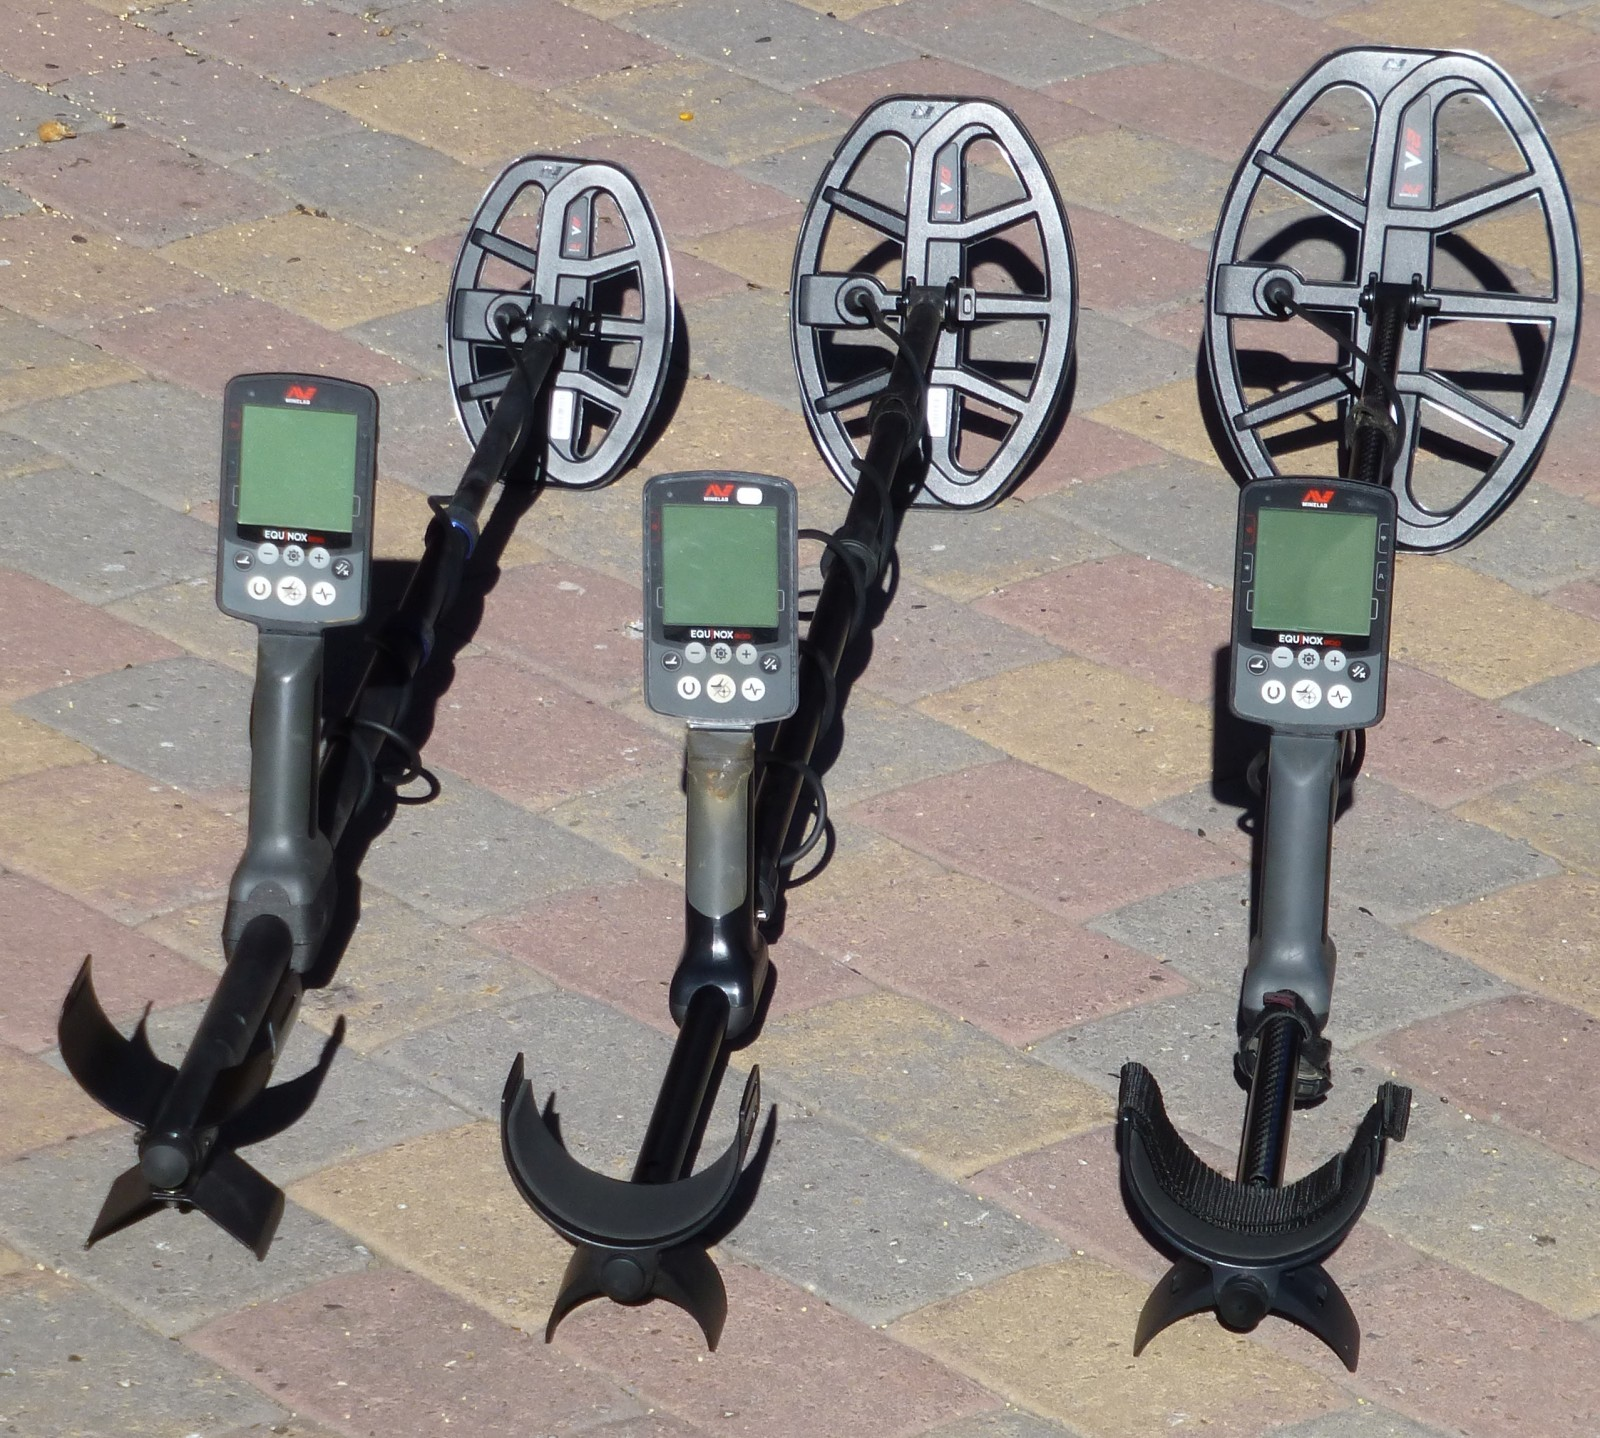 minelab-equinox-detectors-with-vanquish-search-coils.jpg